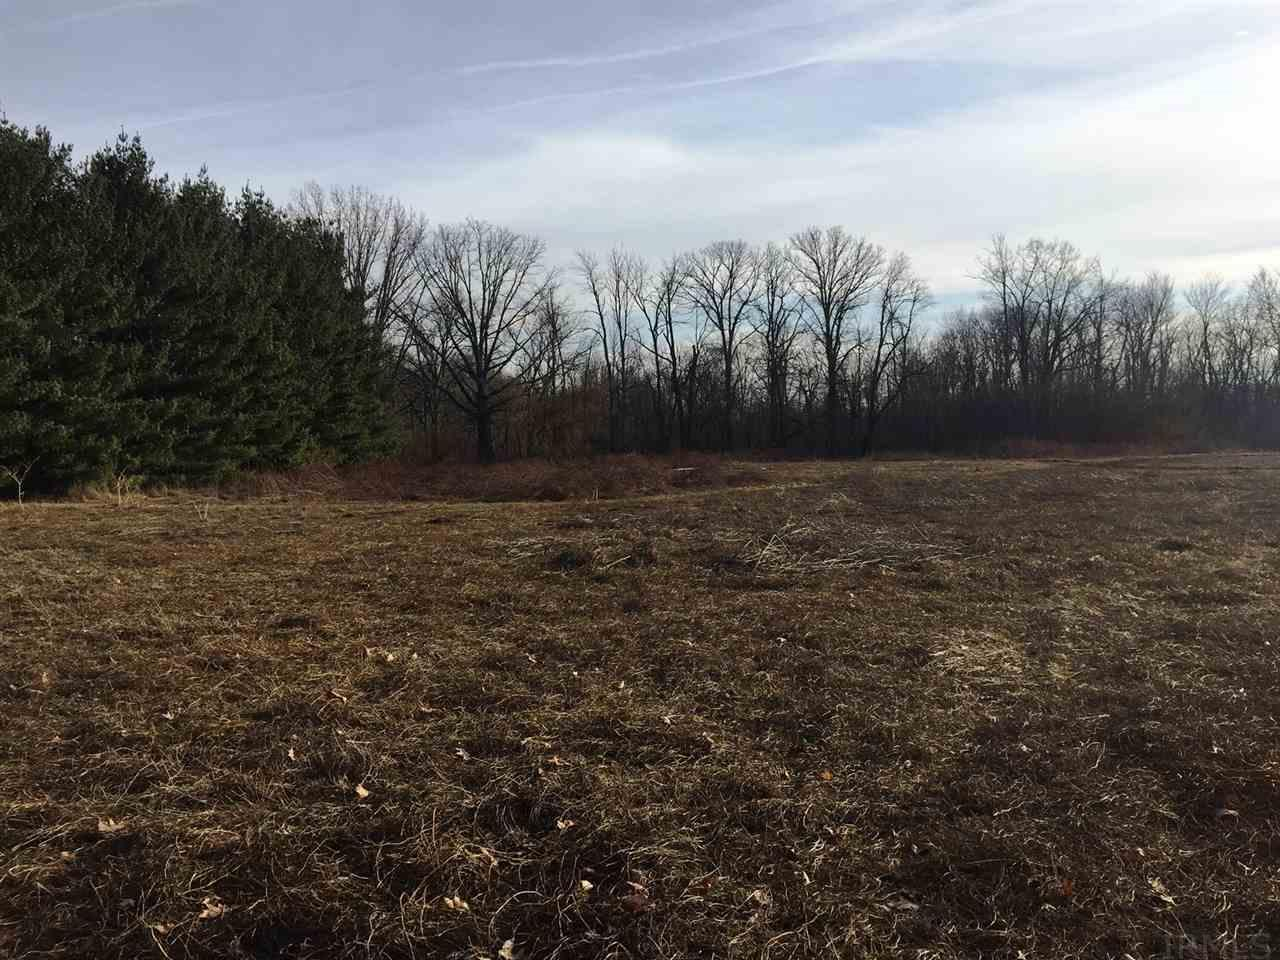 Lot 2 750 N, Orland, IN 46776